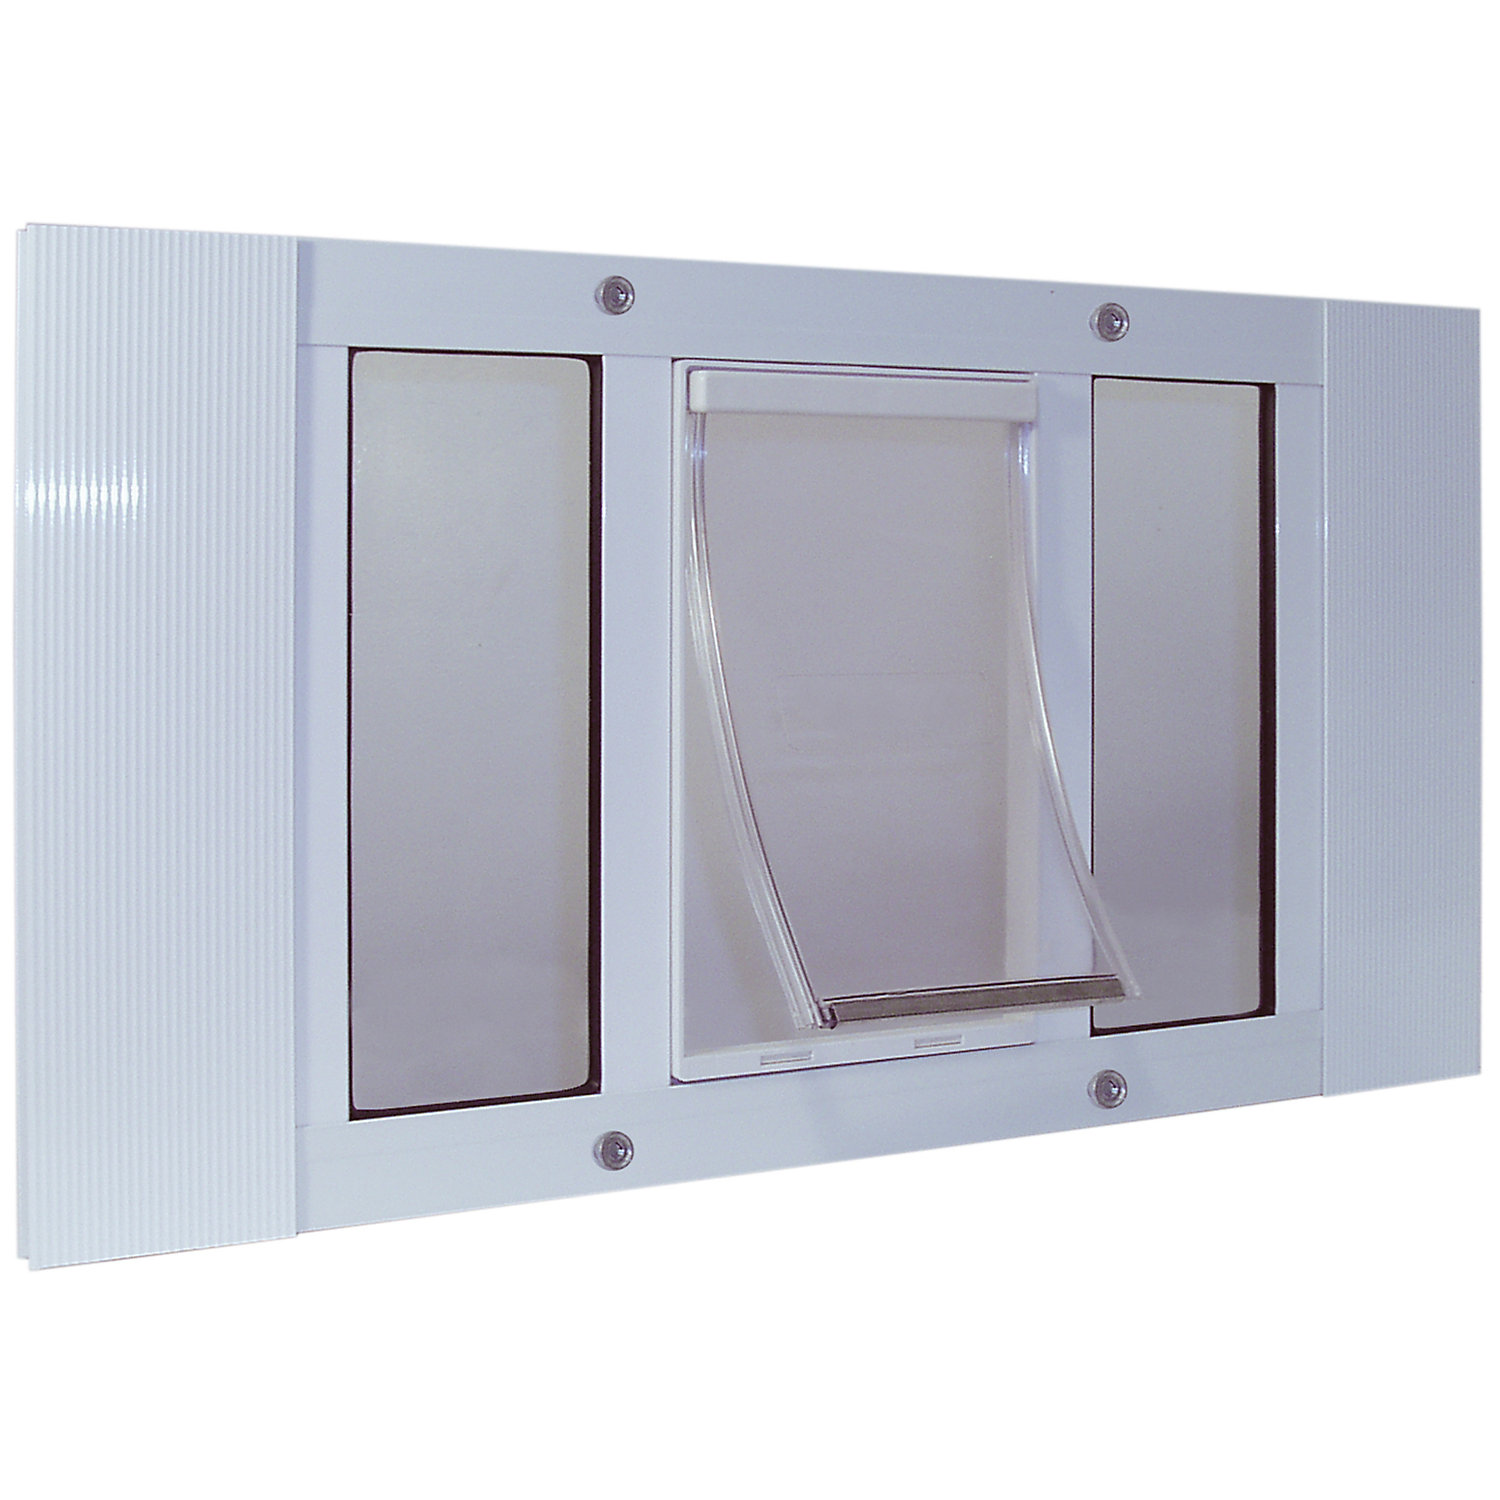 Perfect Pet 3338 Sash Window Pet Door in White